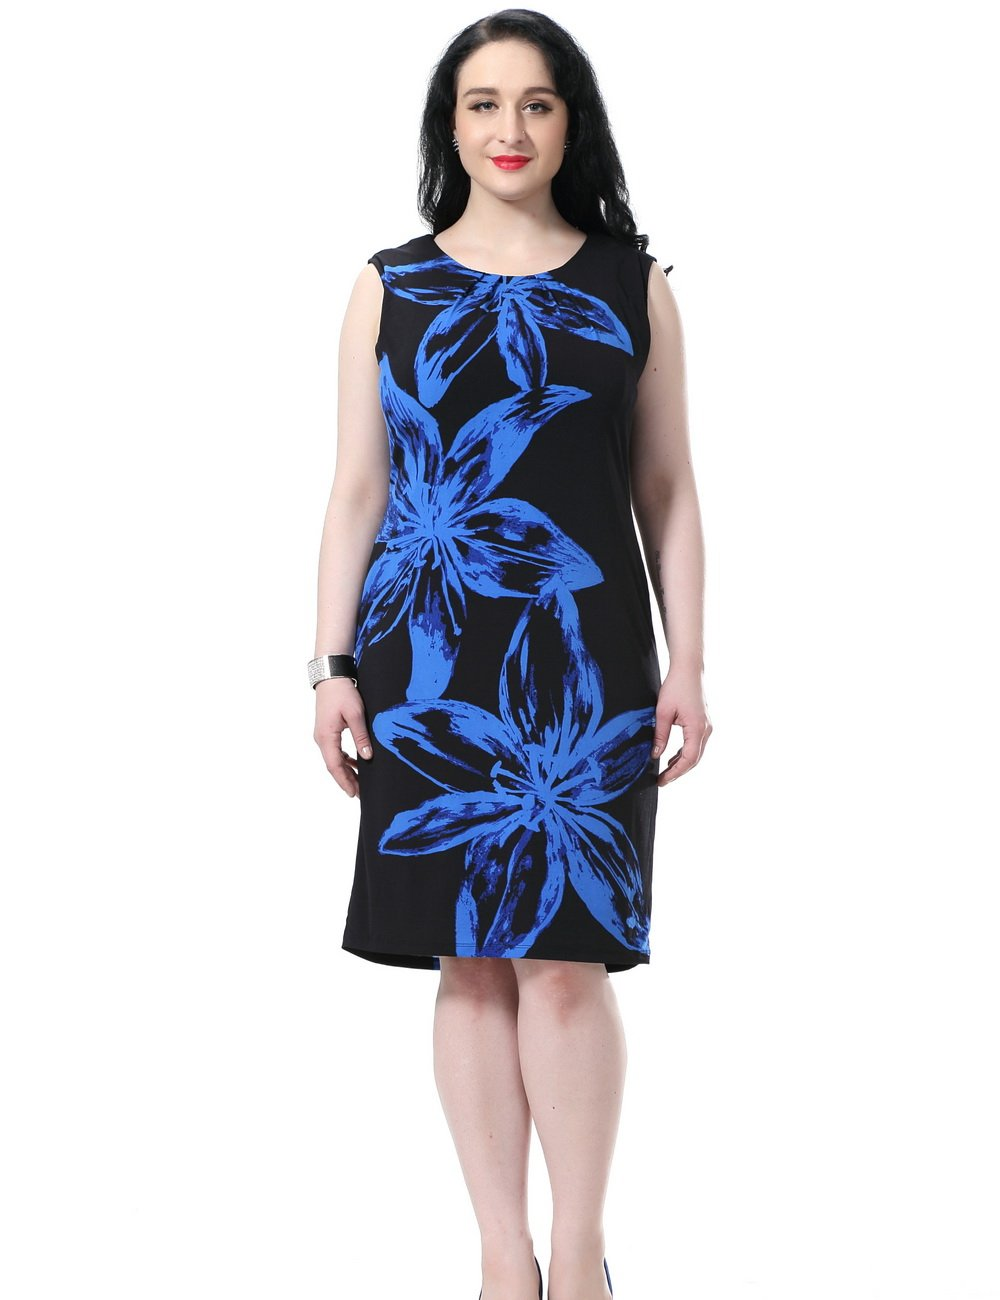 bbd624046c0 ... Friday Chicwe Women s Plus Size Lined Floral Printed Sleeveless Dress –  Knee Length Work and Casual Dress Blue 20.   